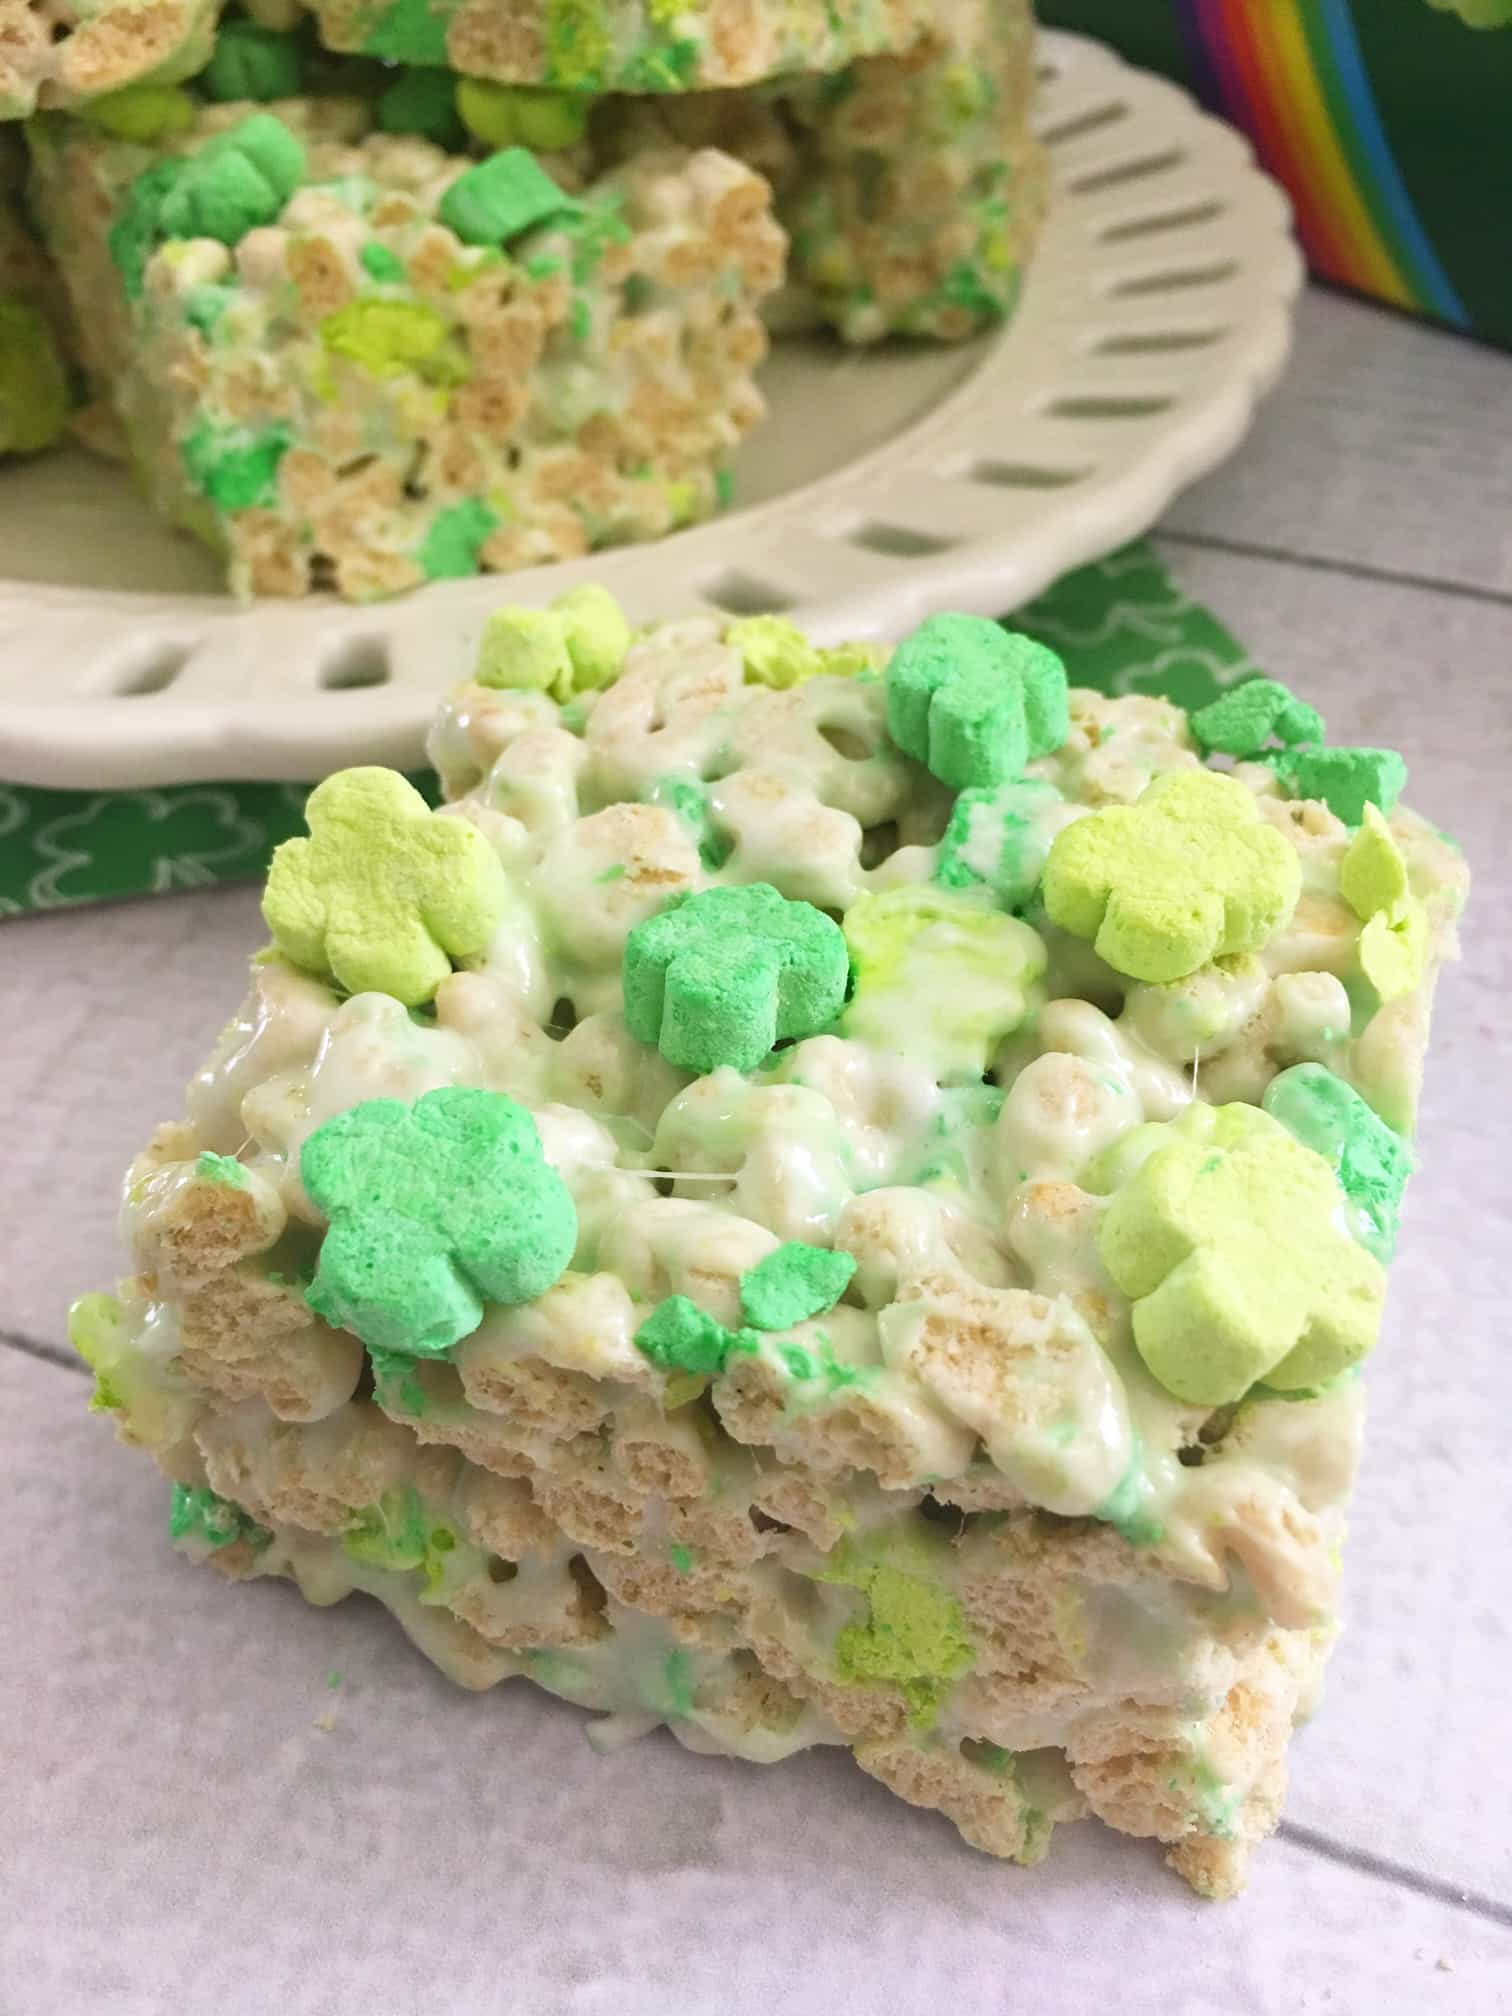 Clover Bars are Perfect for St. Patrick's Day